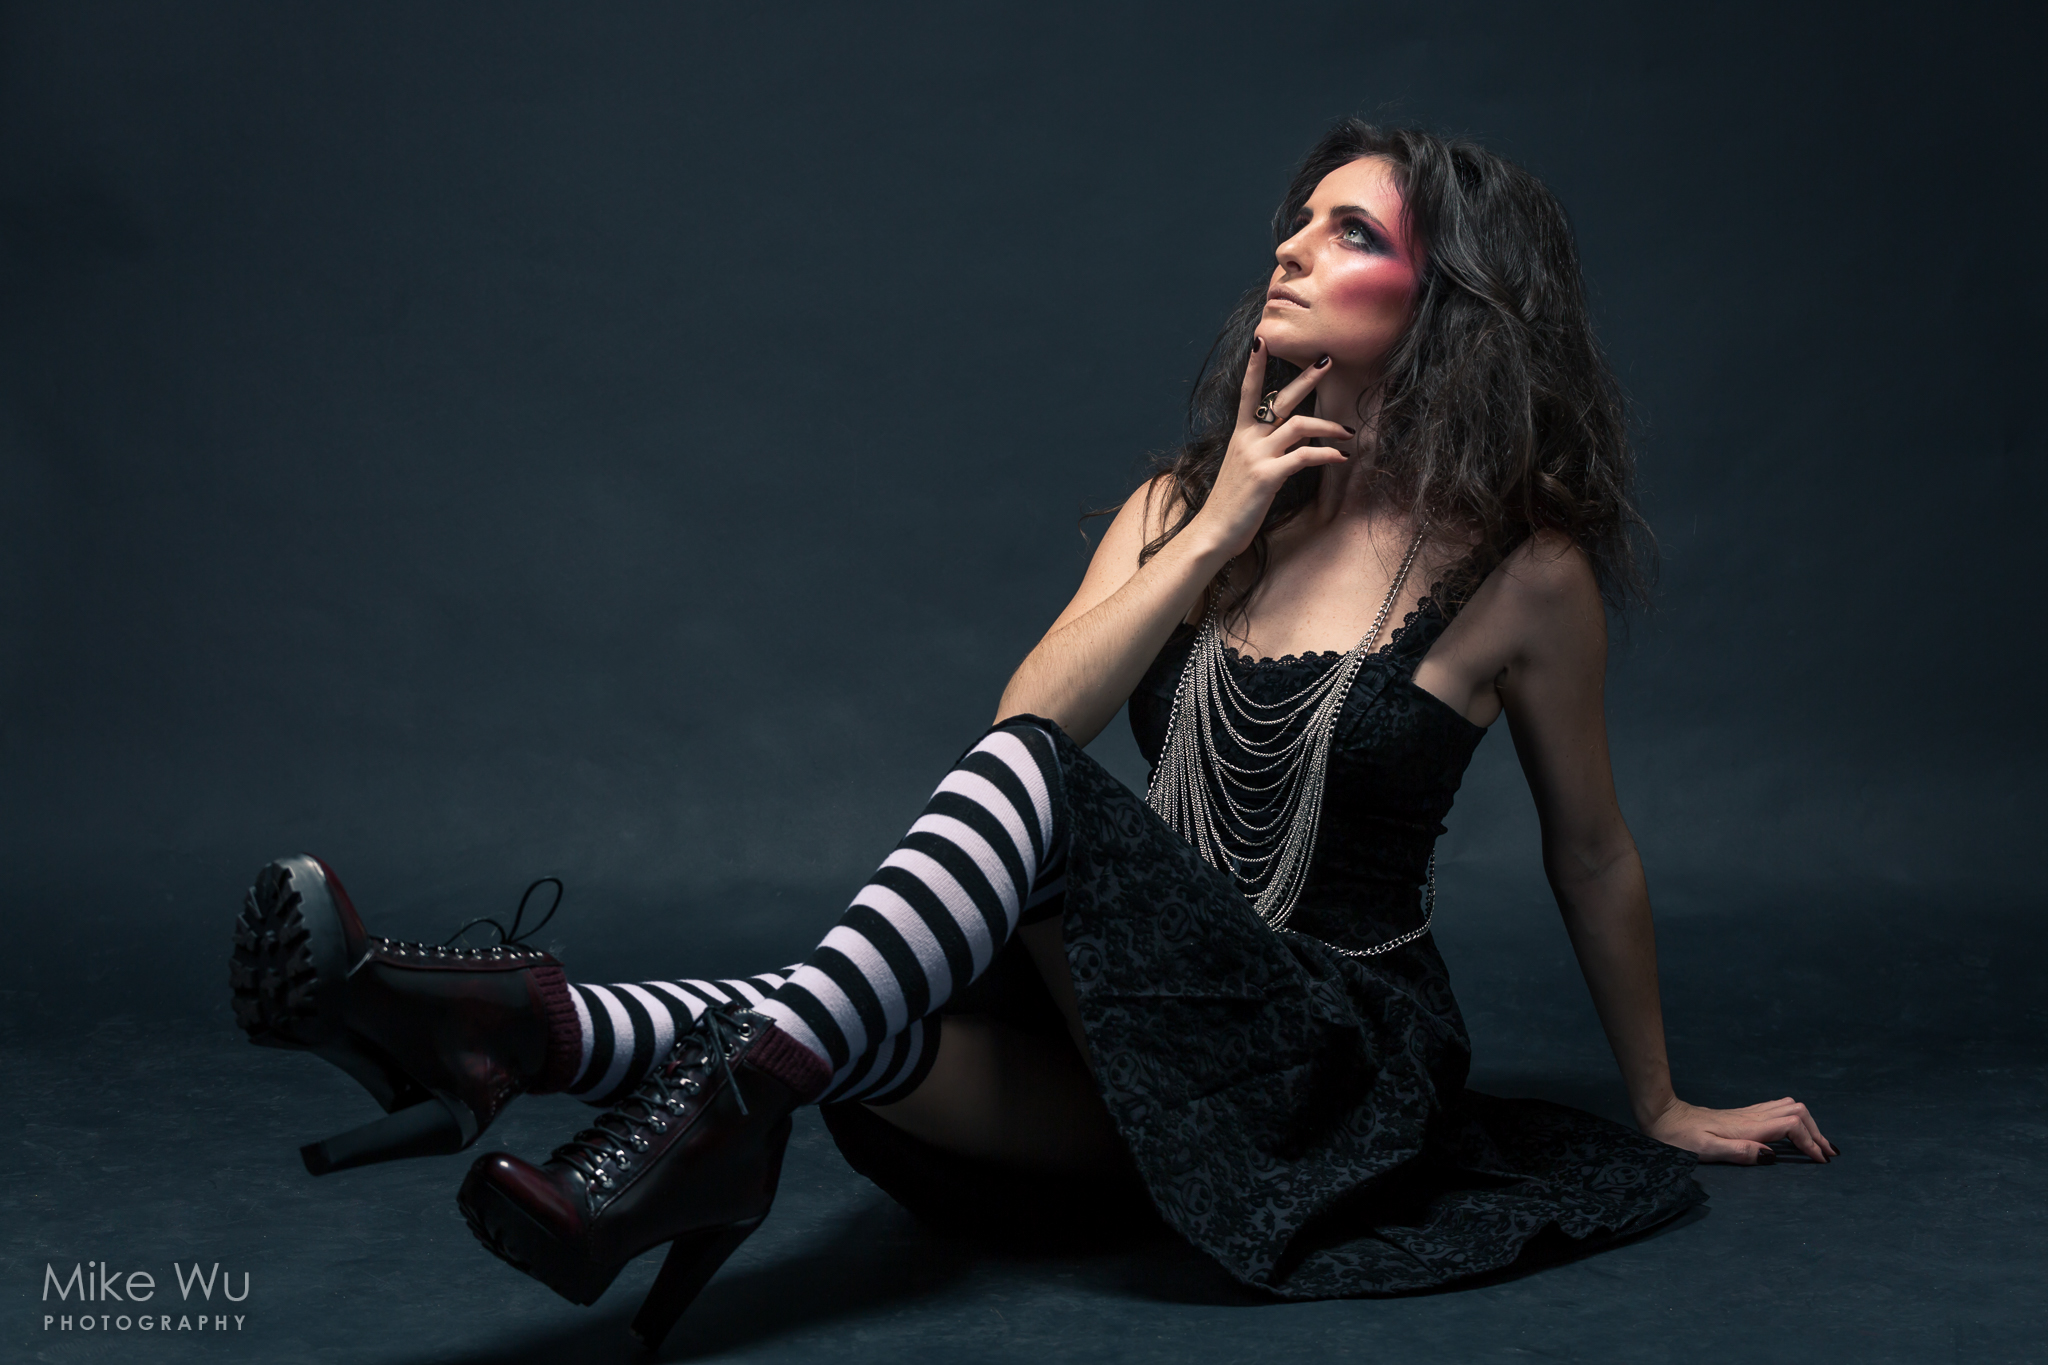 dark, lowkey, vancouver, studio, gothic, jewelry, necklaces, black dress, striped leggins, black shoes, cool, goth, photoshoot, fashion